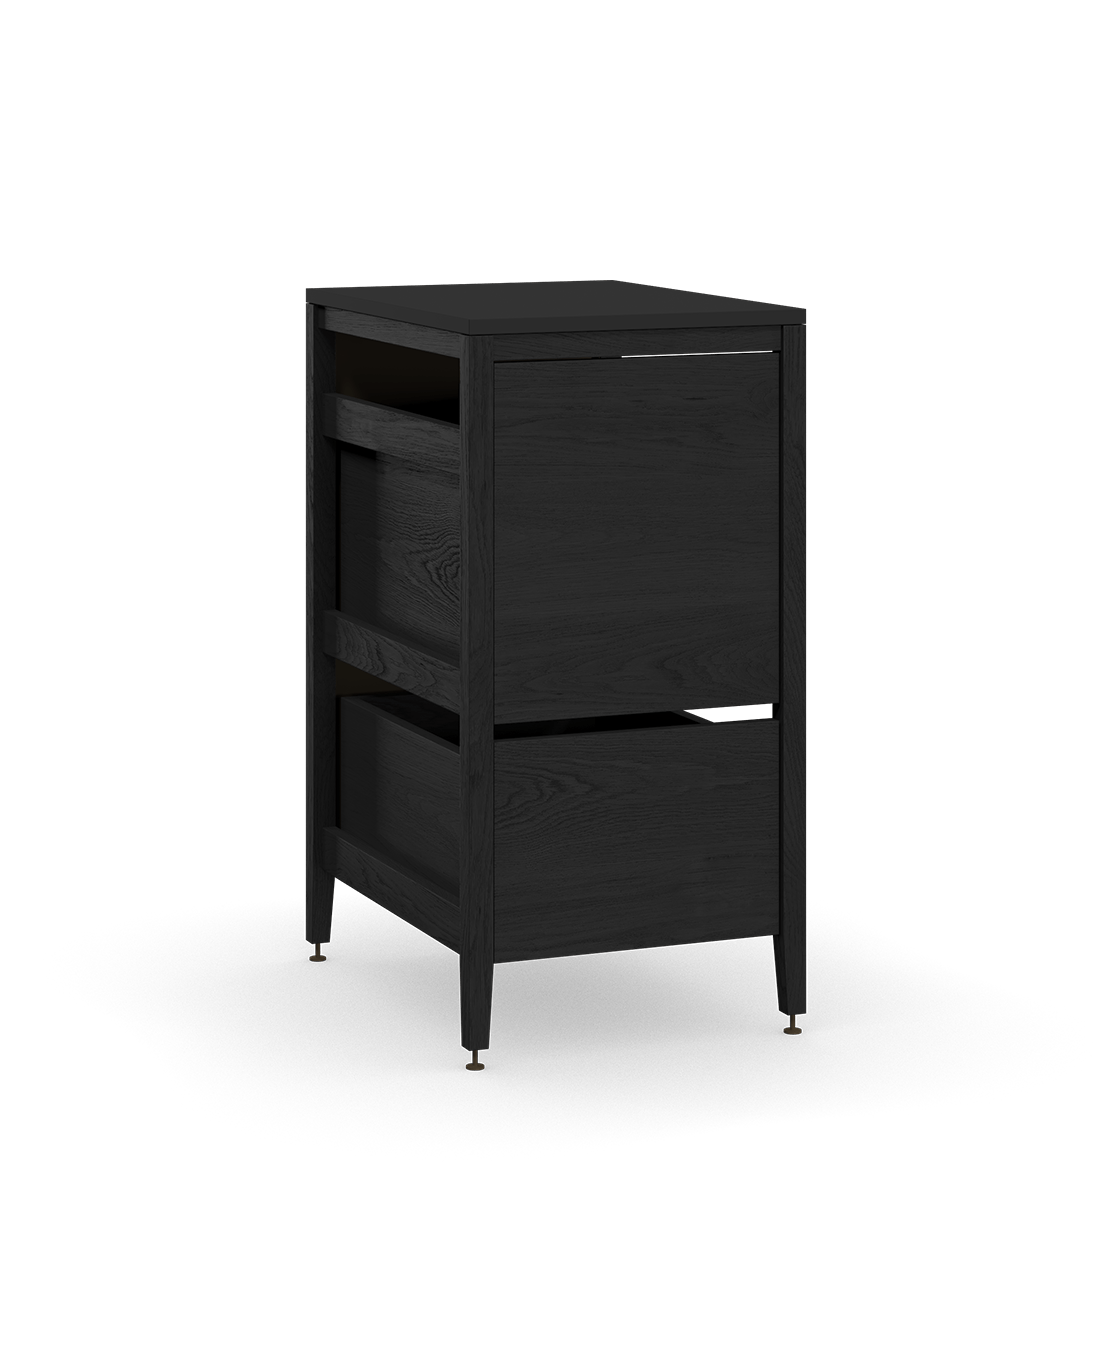 coquo radix midnight black stained oak solid wood modular 1 drawer 2 bins trash base kitchen cabinet 18 inch C1-CTR-18TB-2001-BK